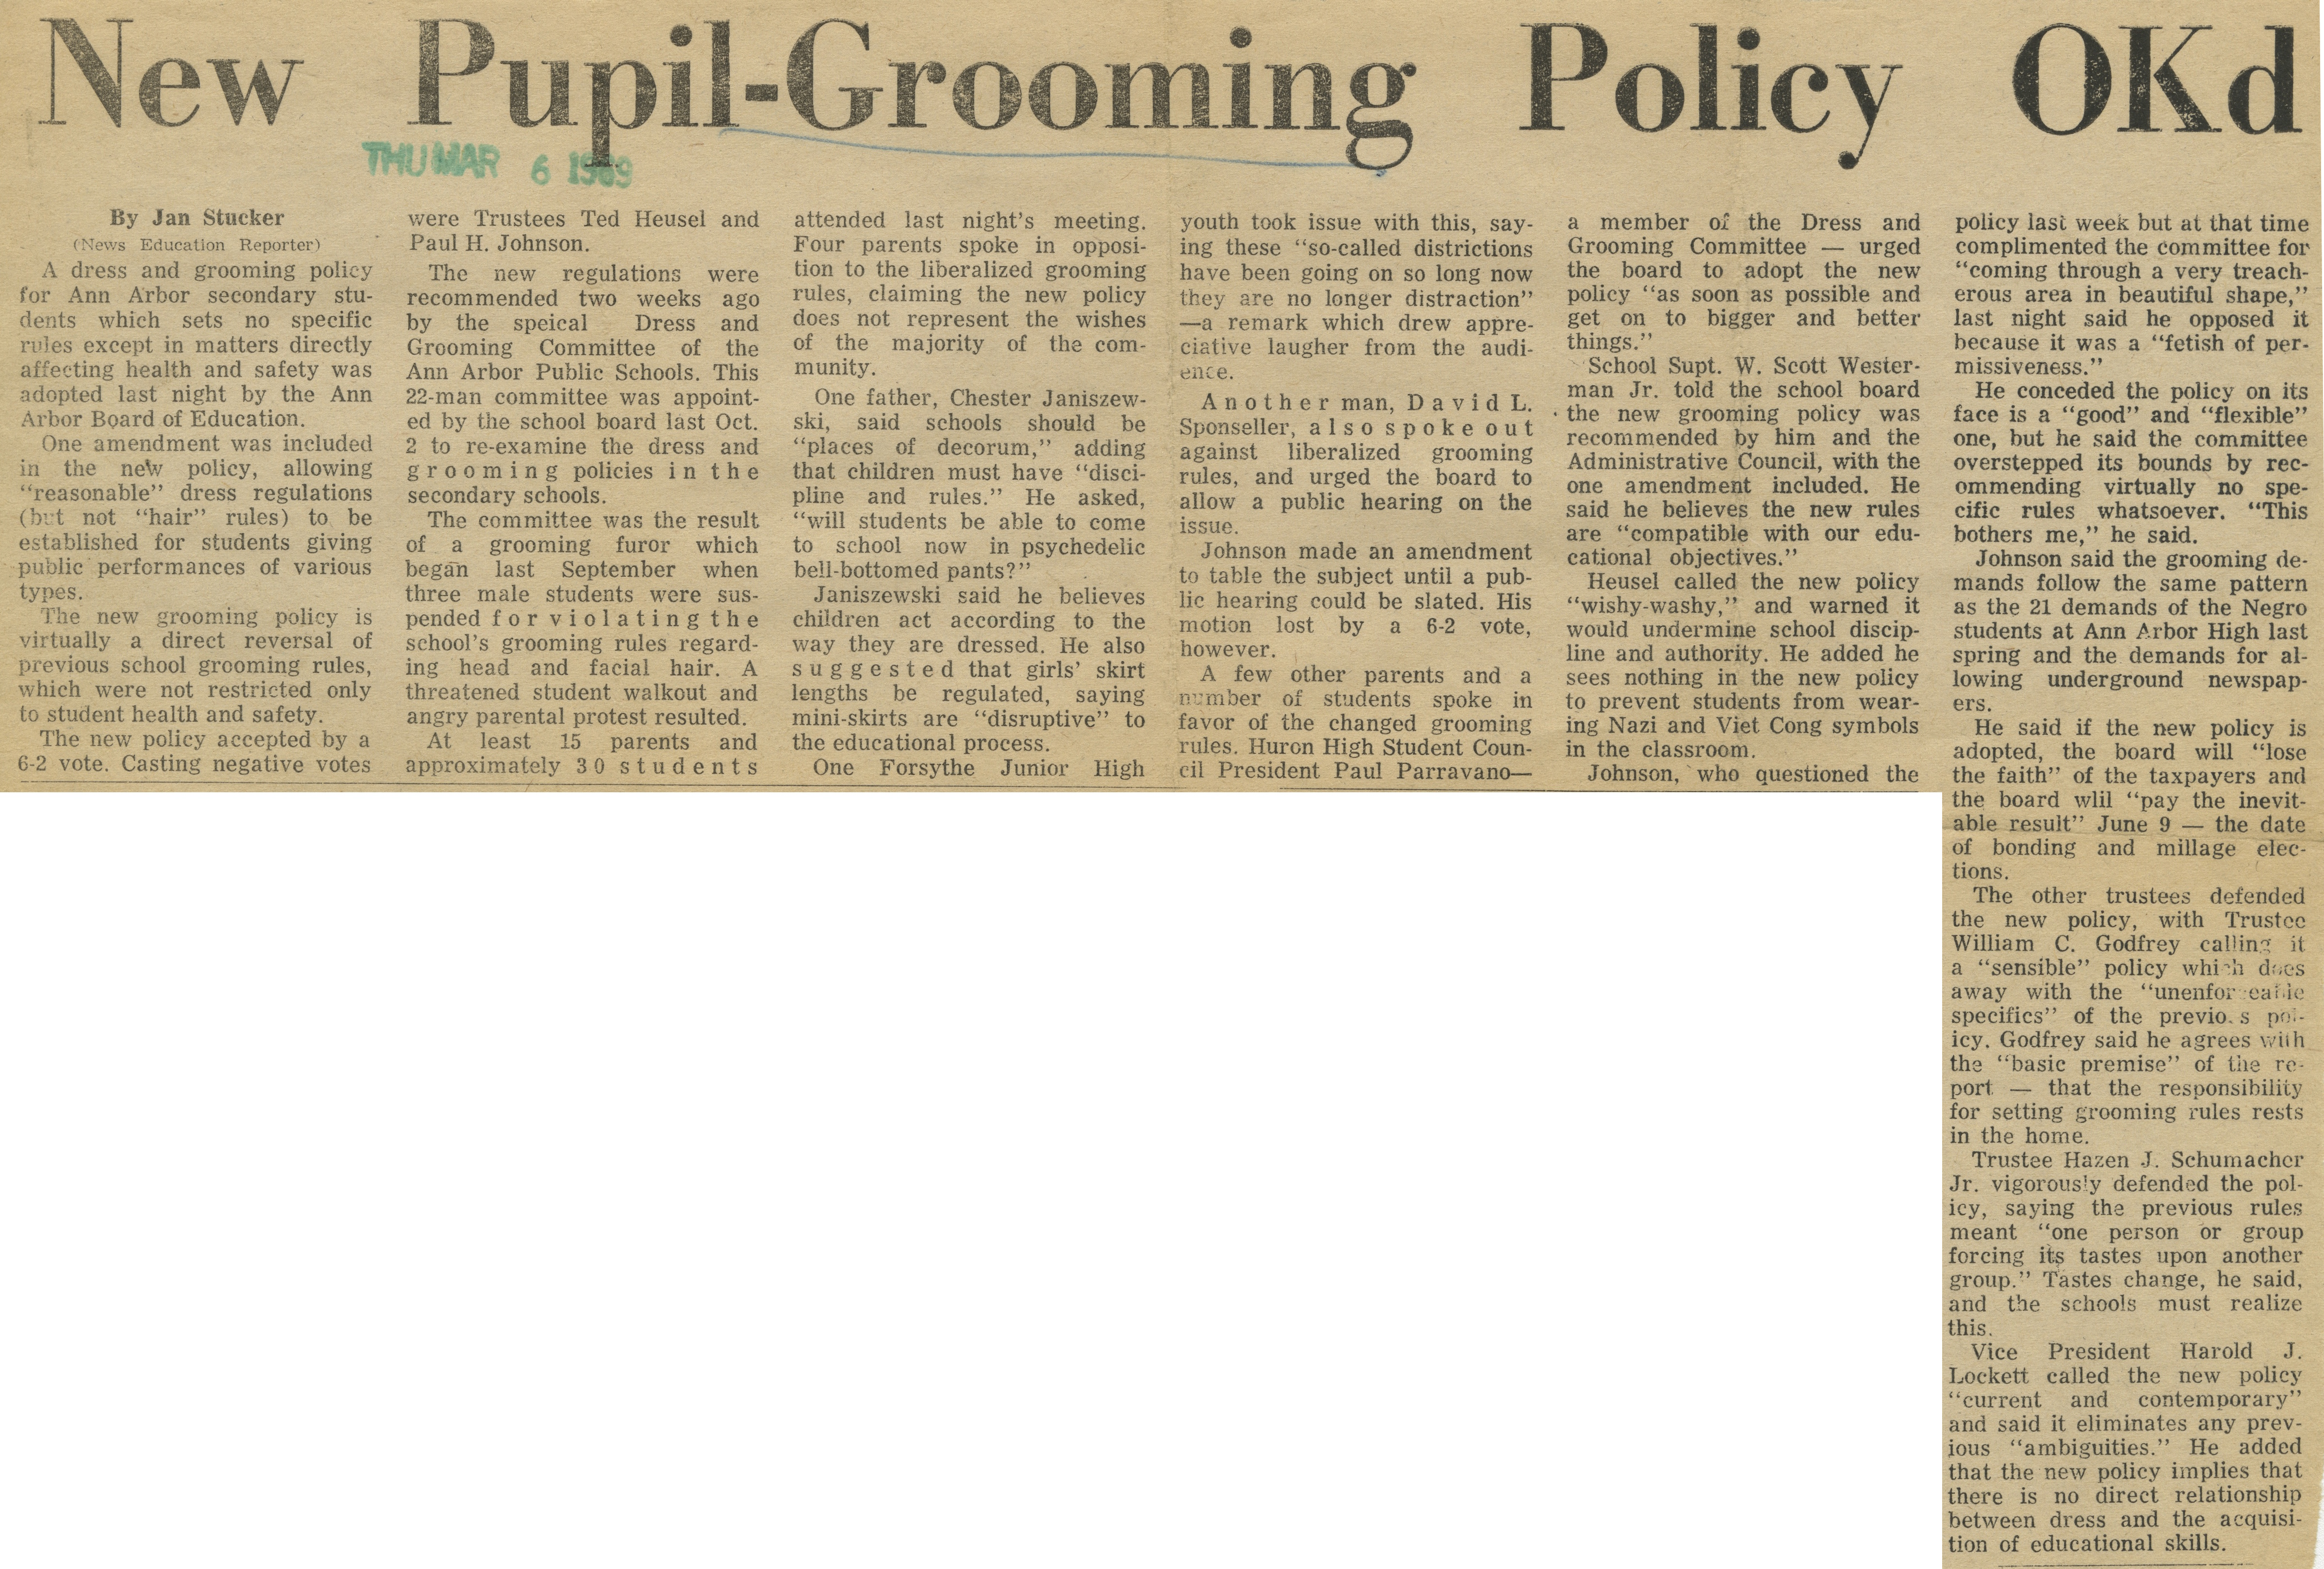 New Pupil-Grooming Policy OKd image